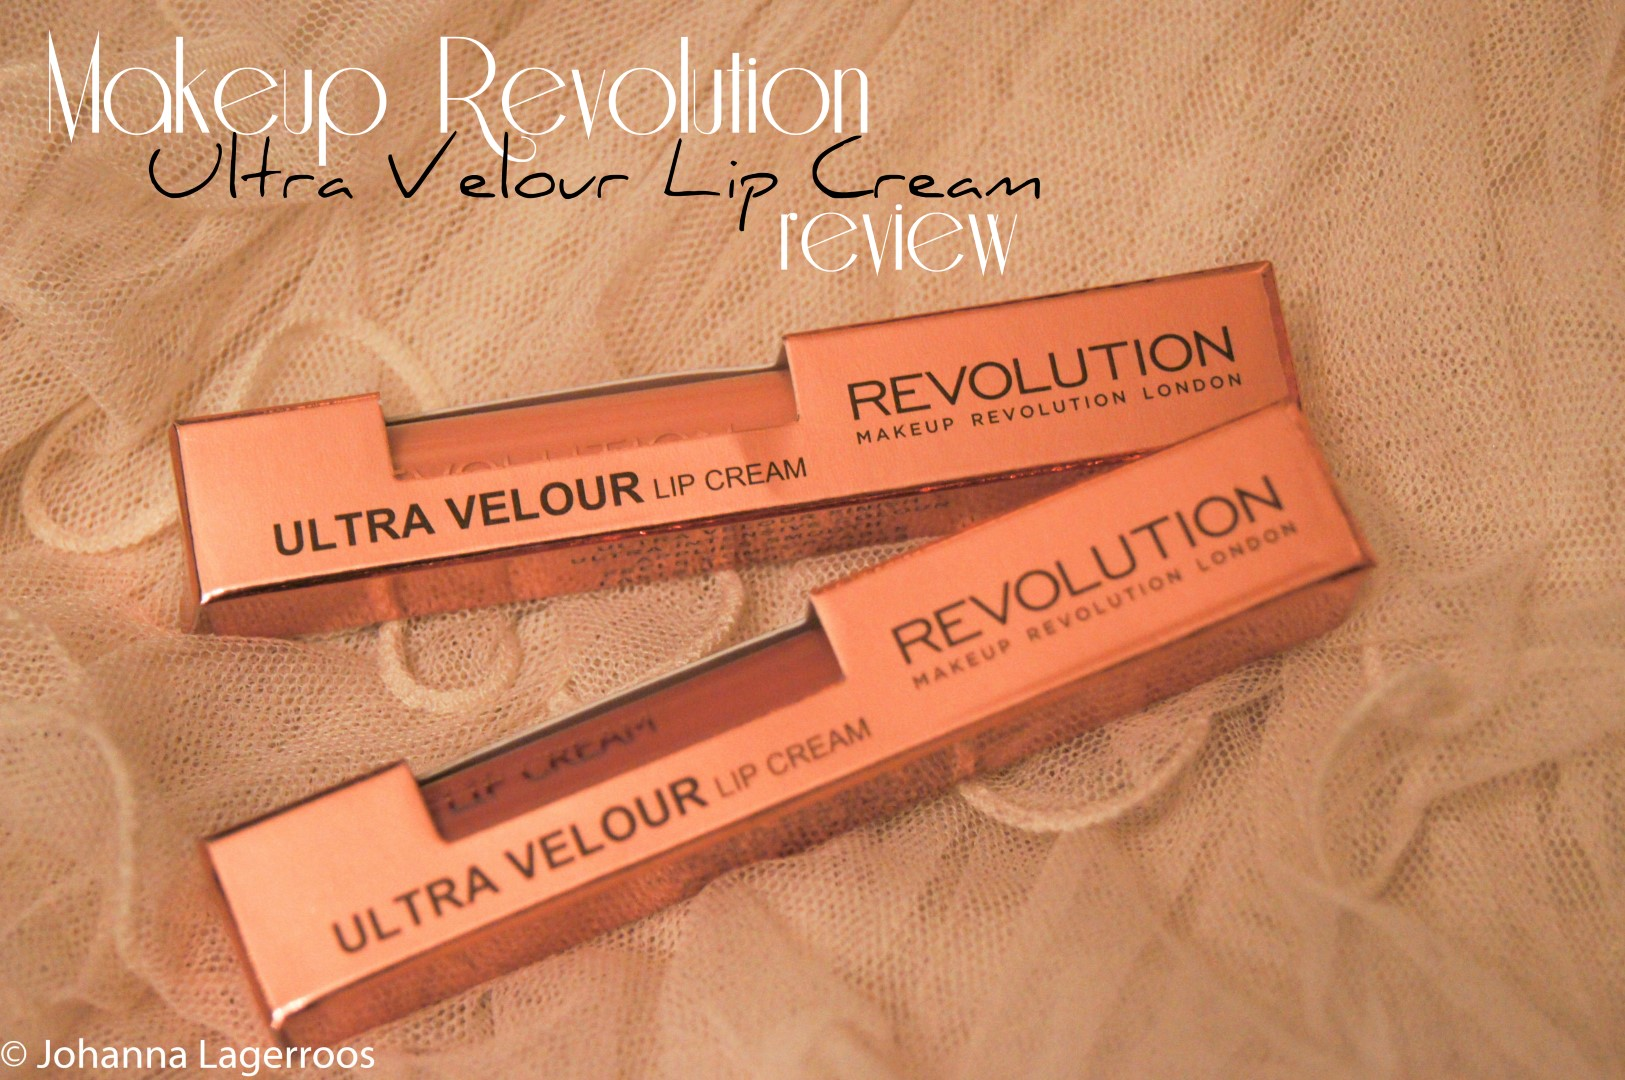 ultra velour lip cream packages